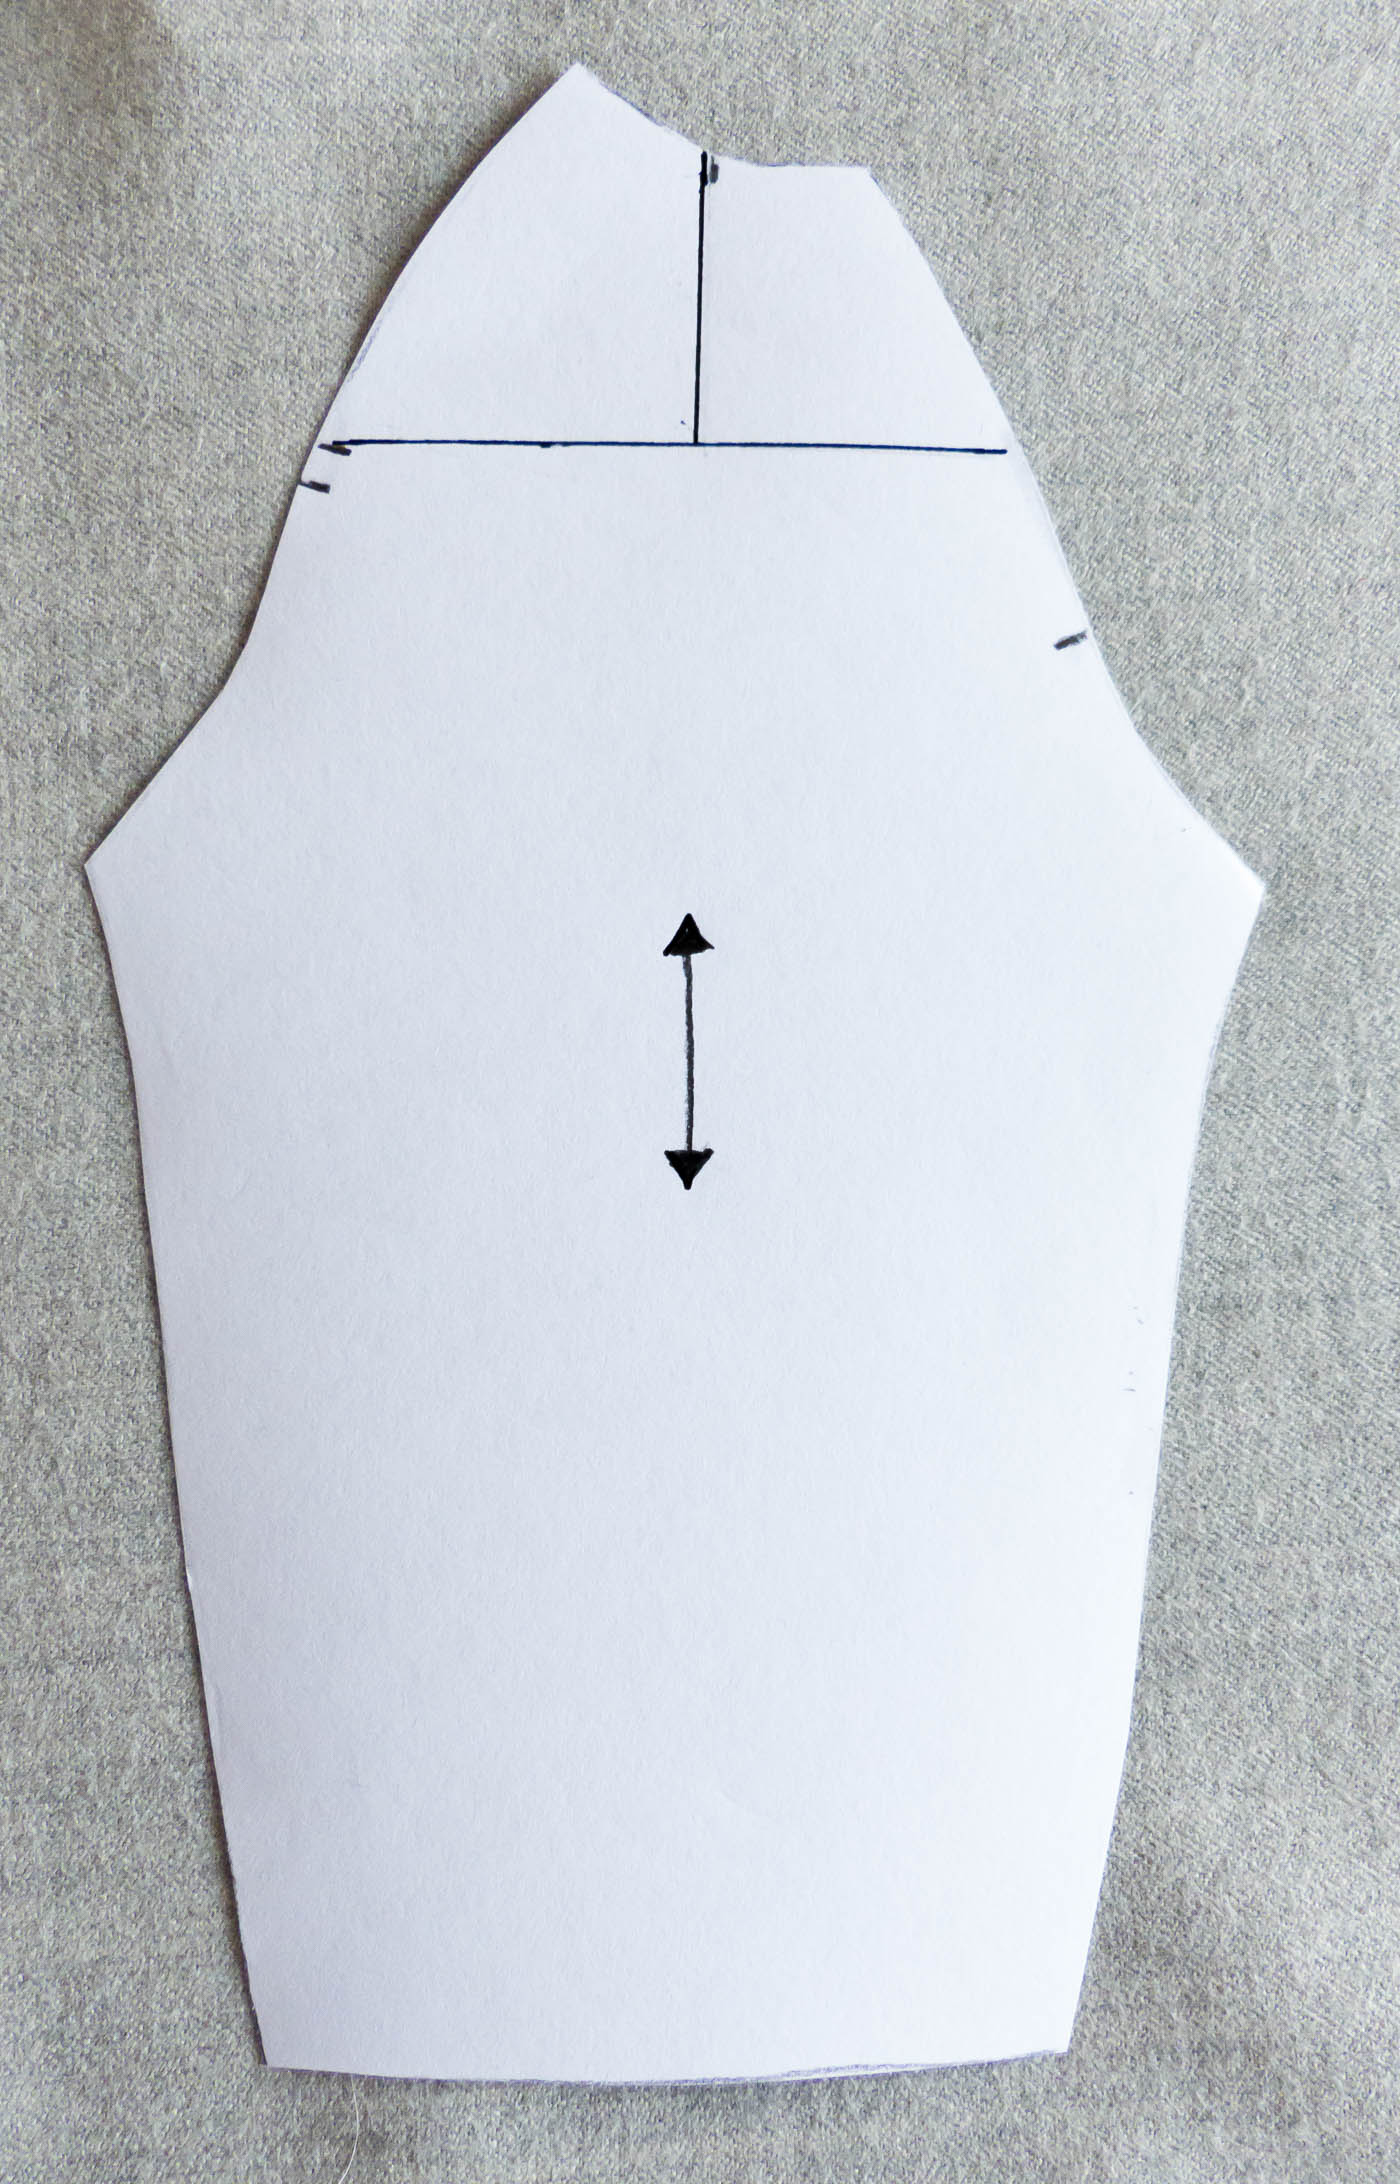 Adapting sleeve patterns for square or forward rolling shoulders